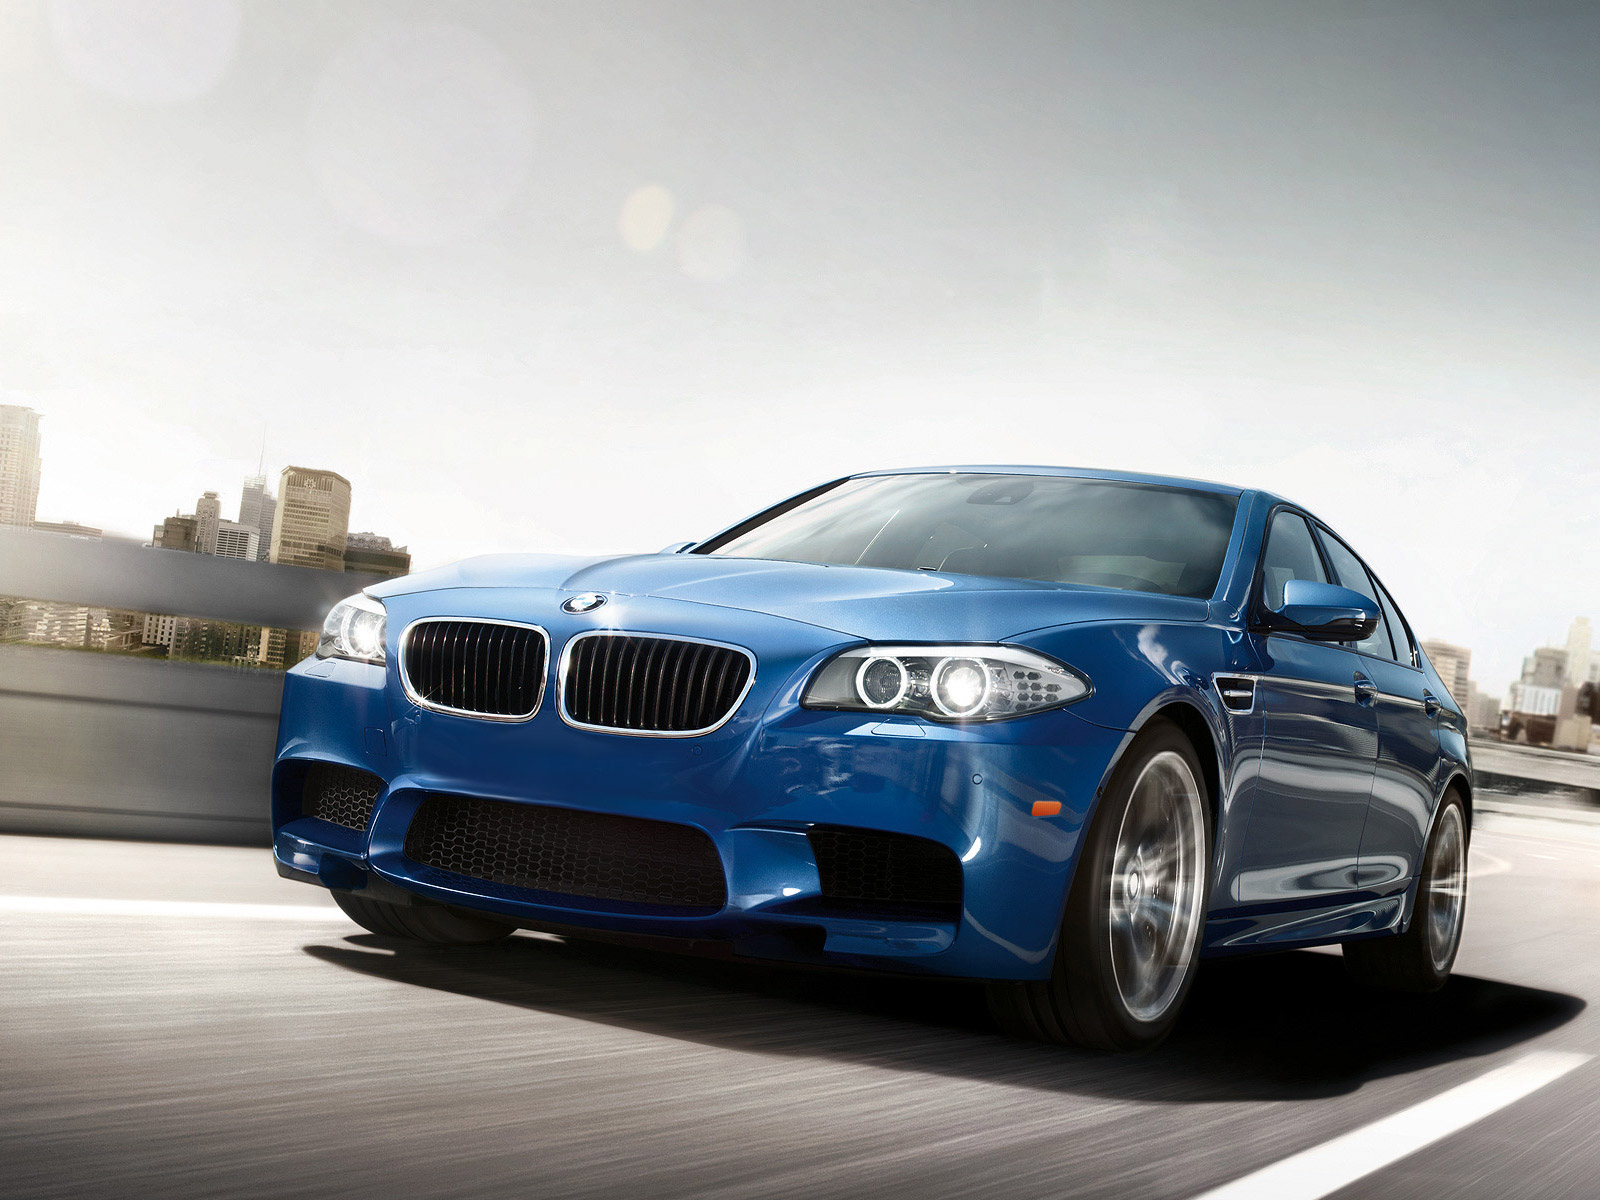 2012 BMW M5 - Review - CarGurus